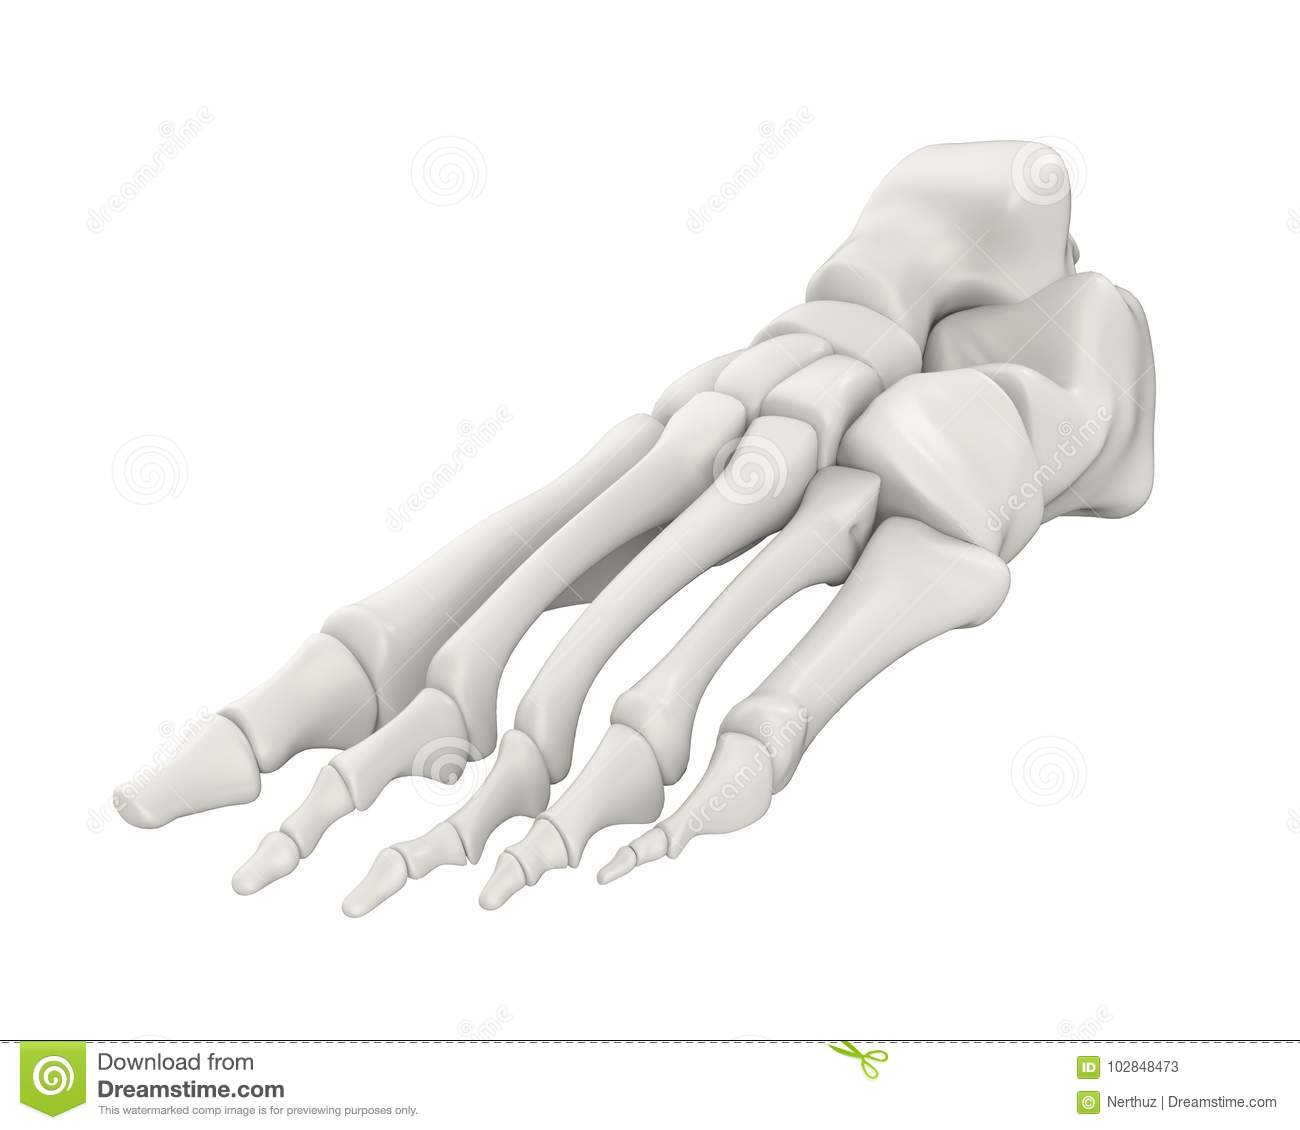 Foot Bones Anatomy Isolated Stock Illustration - Illustration of ...